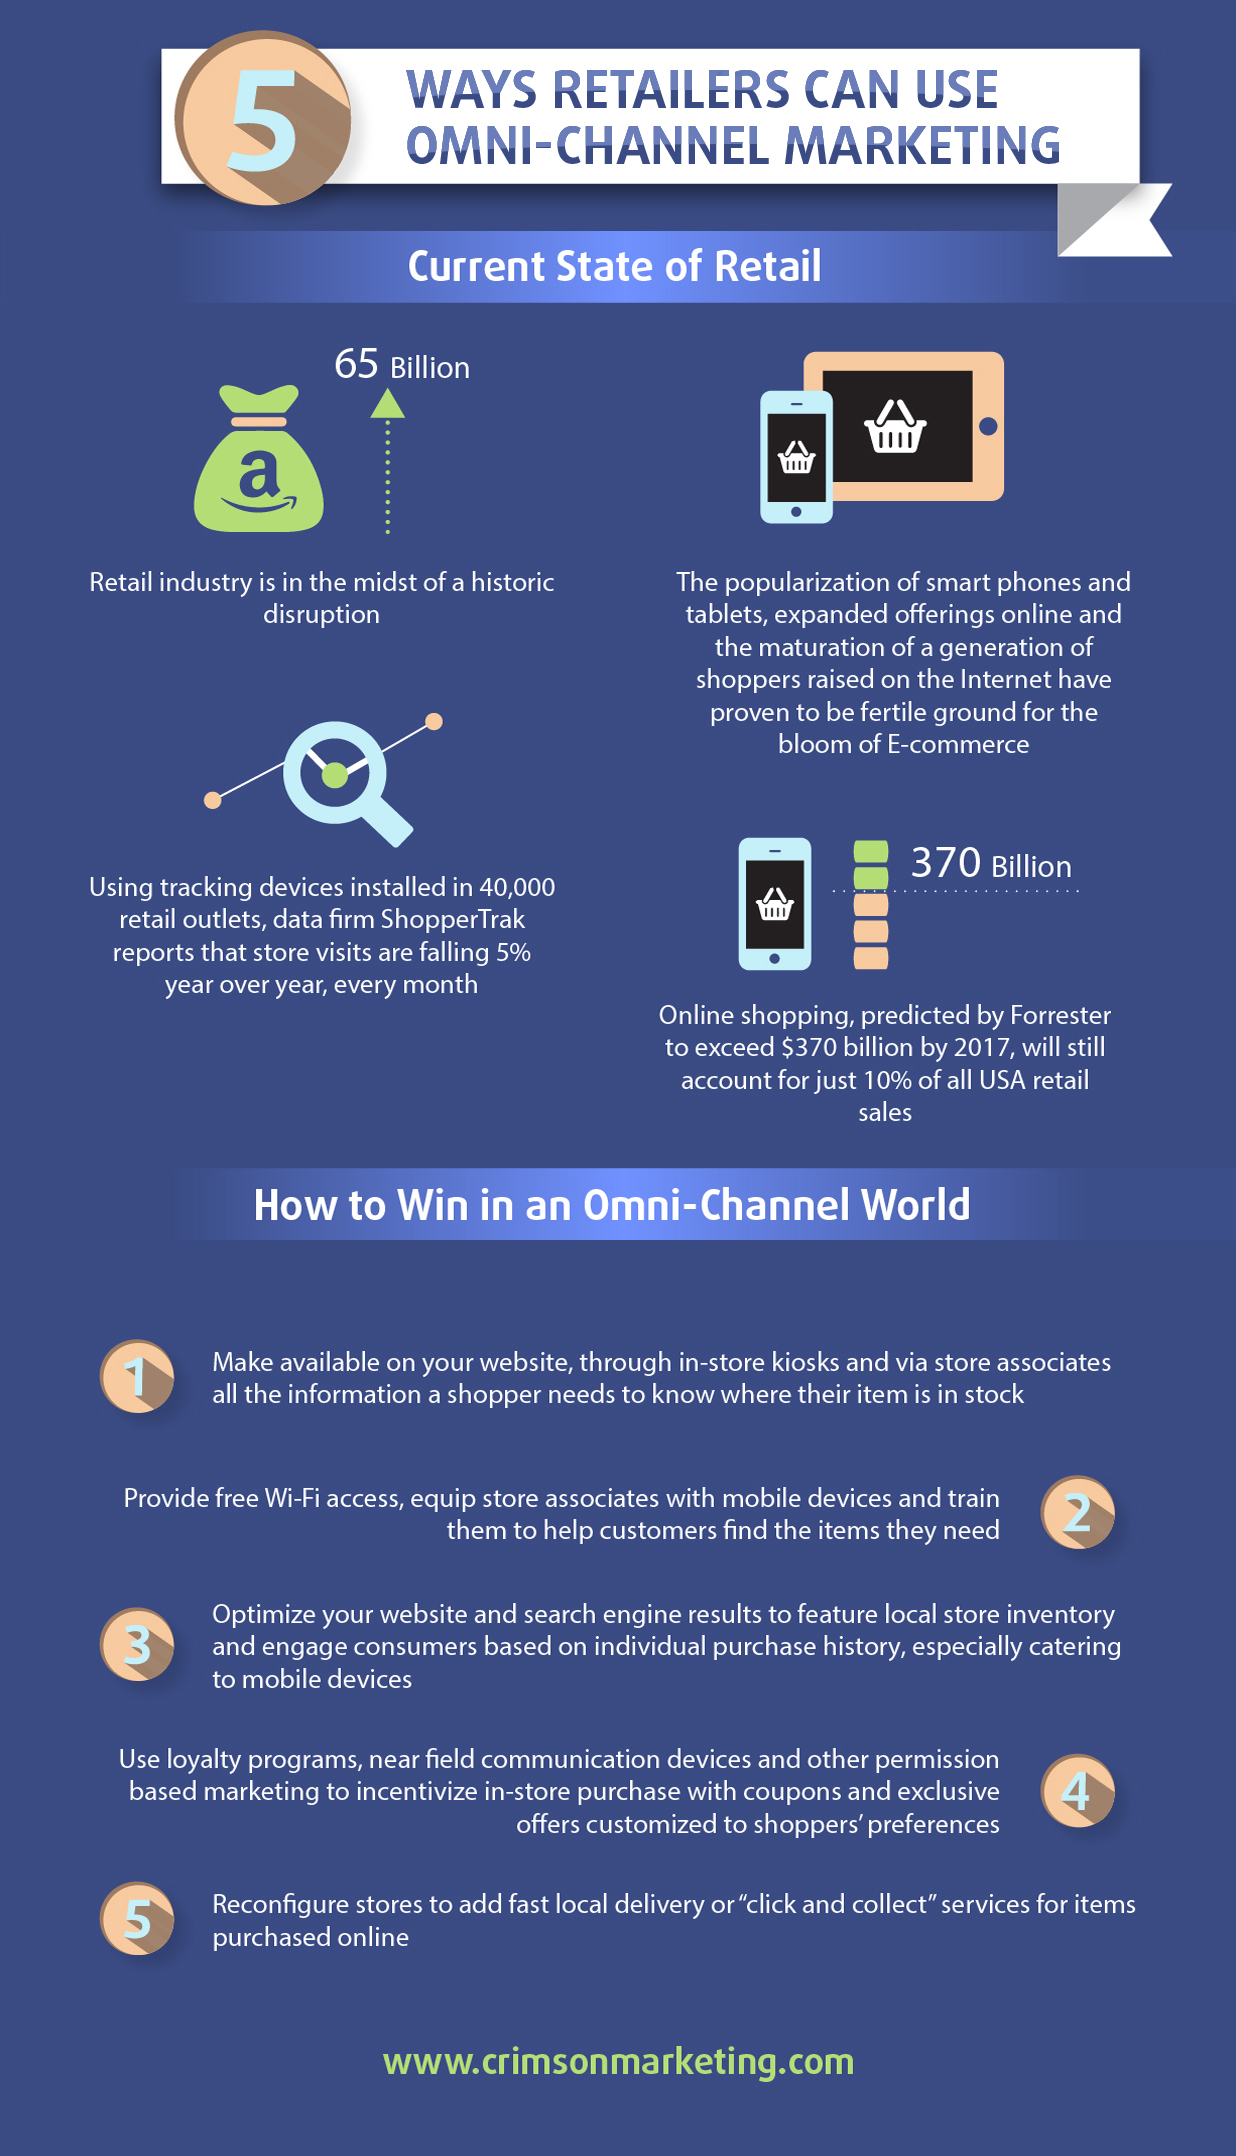 How to Compete in an Omni-Channel World